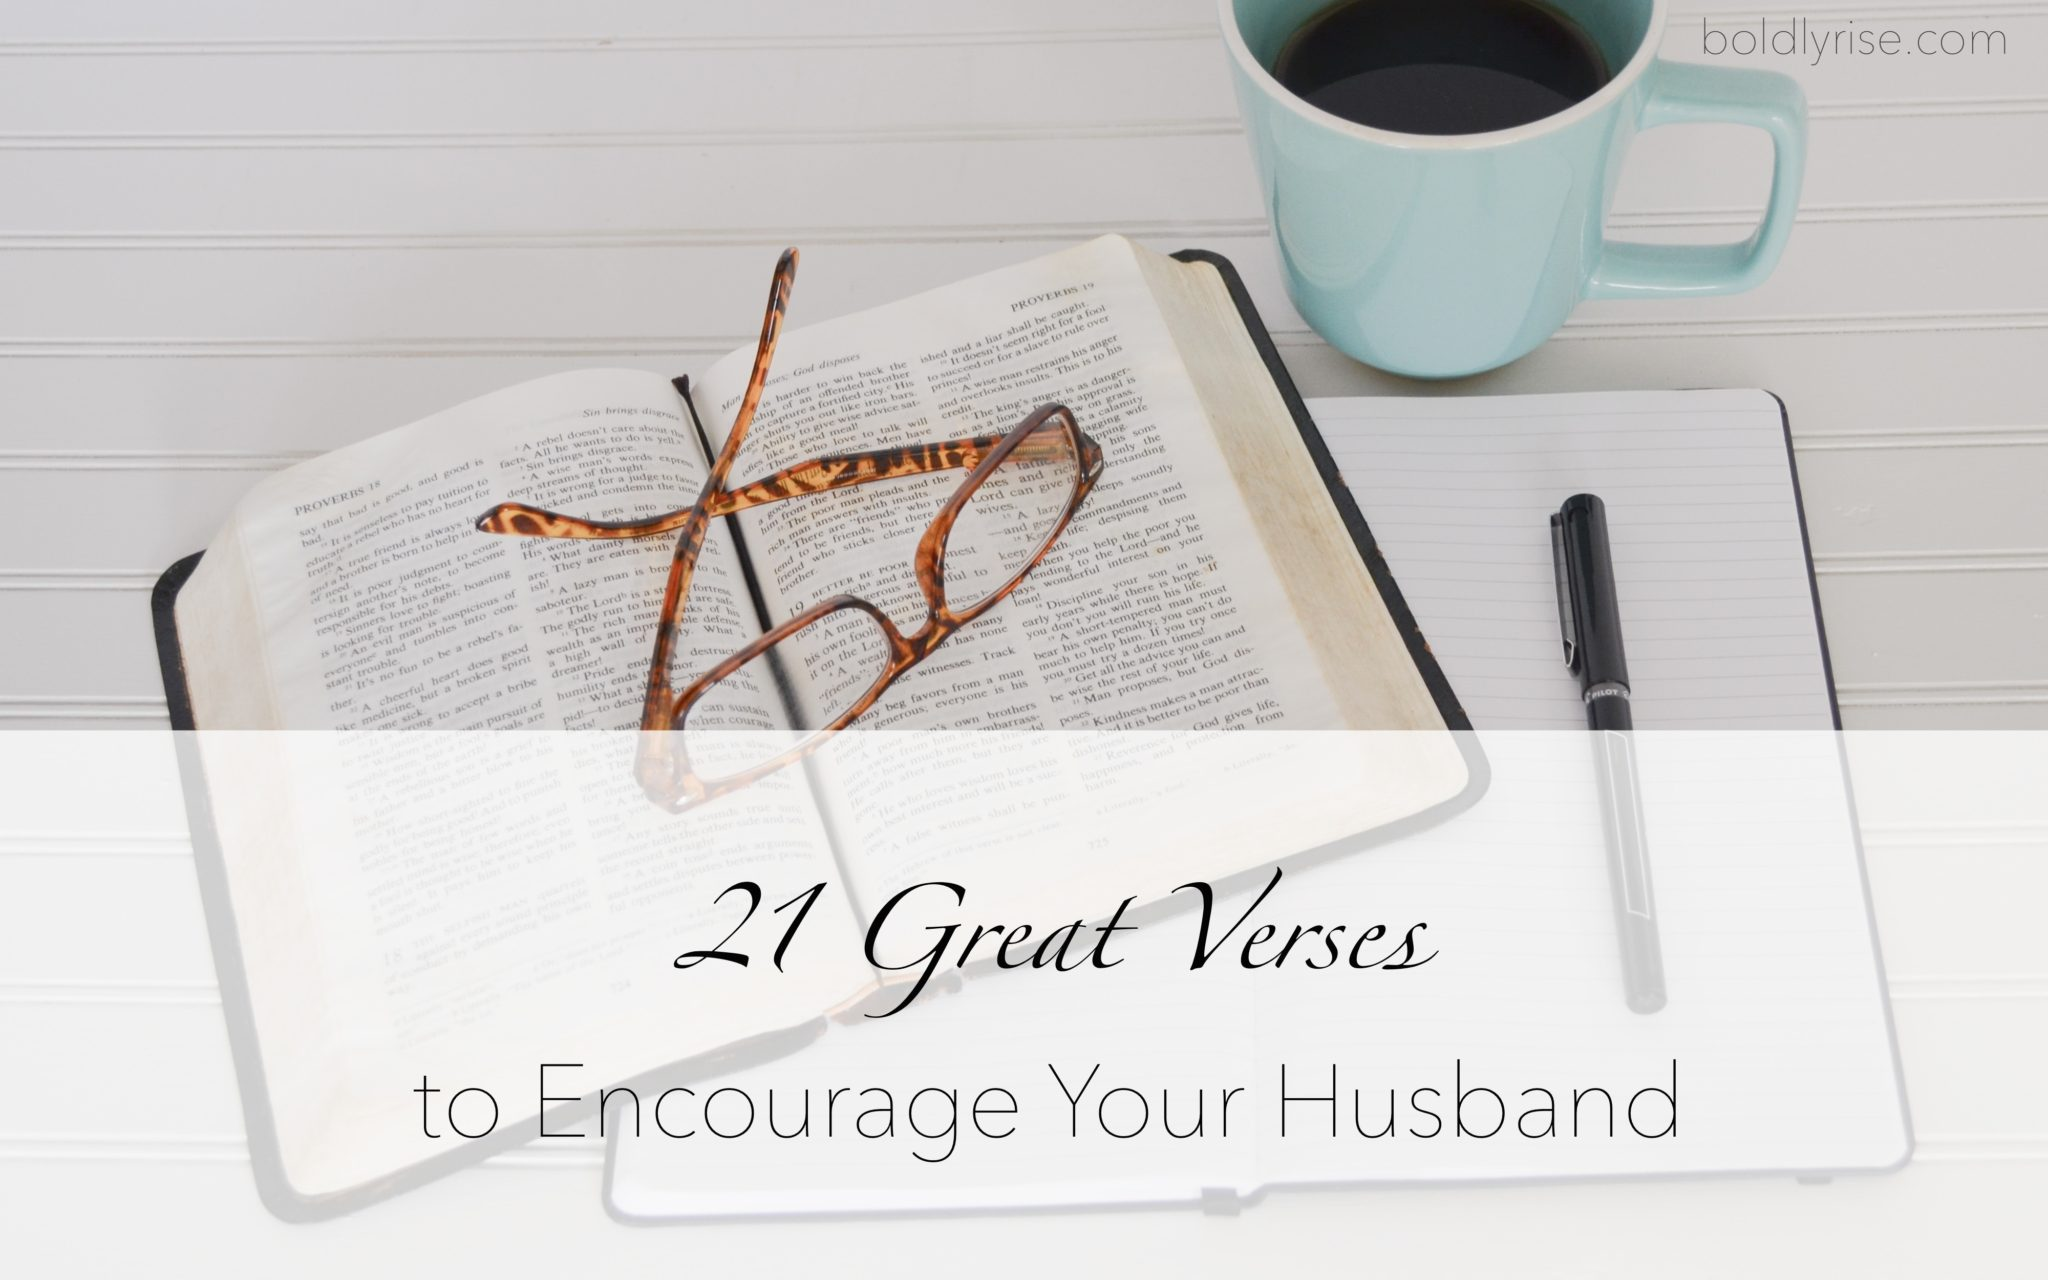 21 great verses to encourage your husband boldly rise